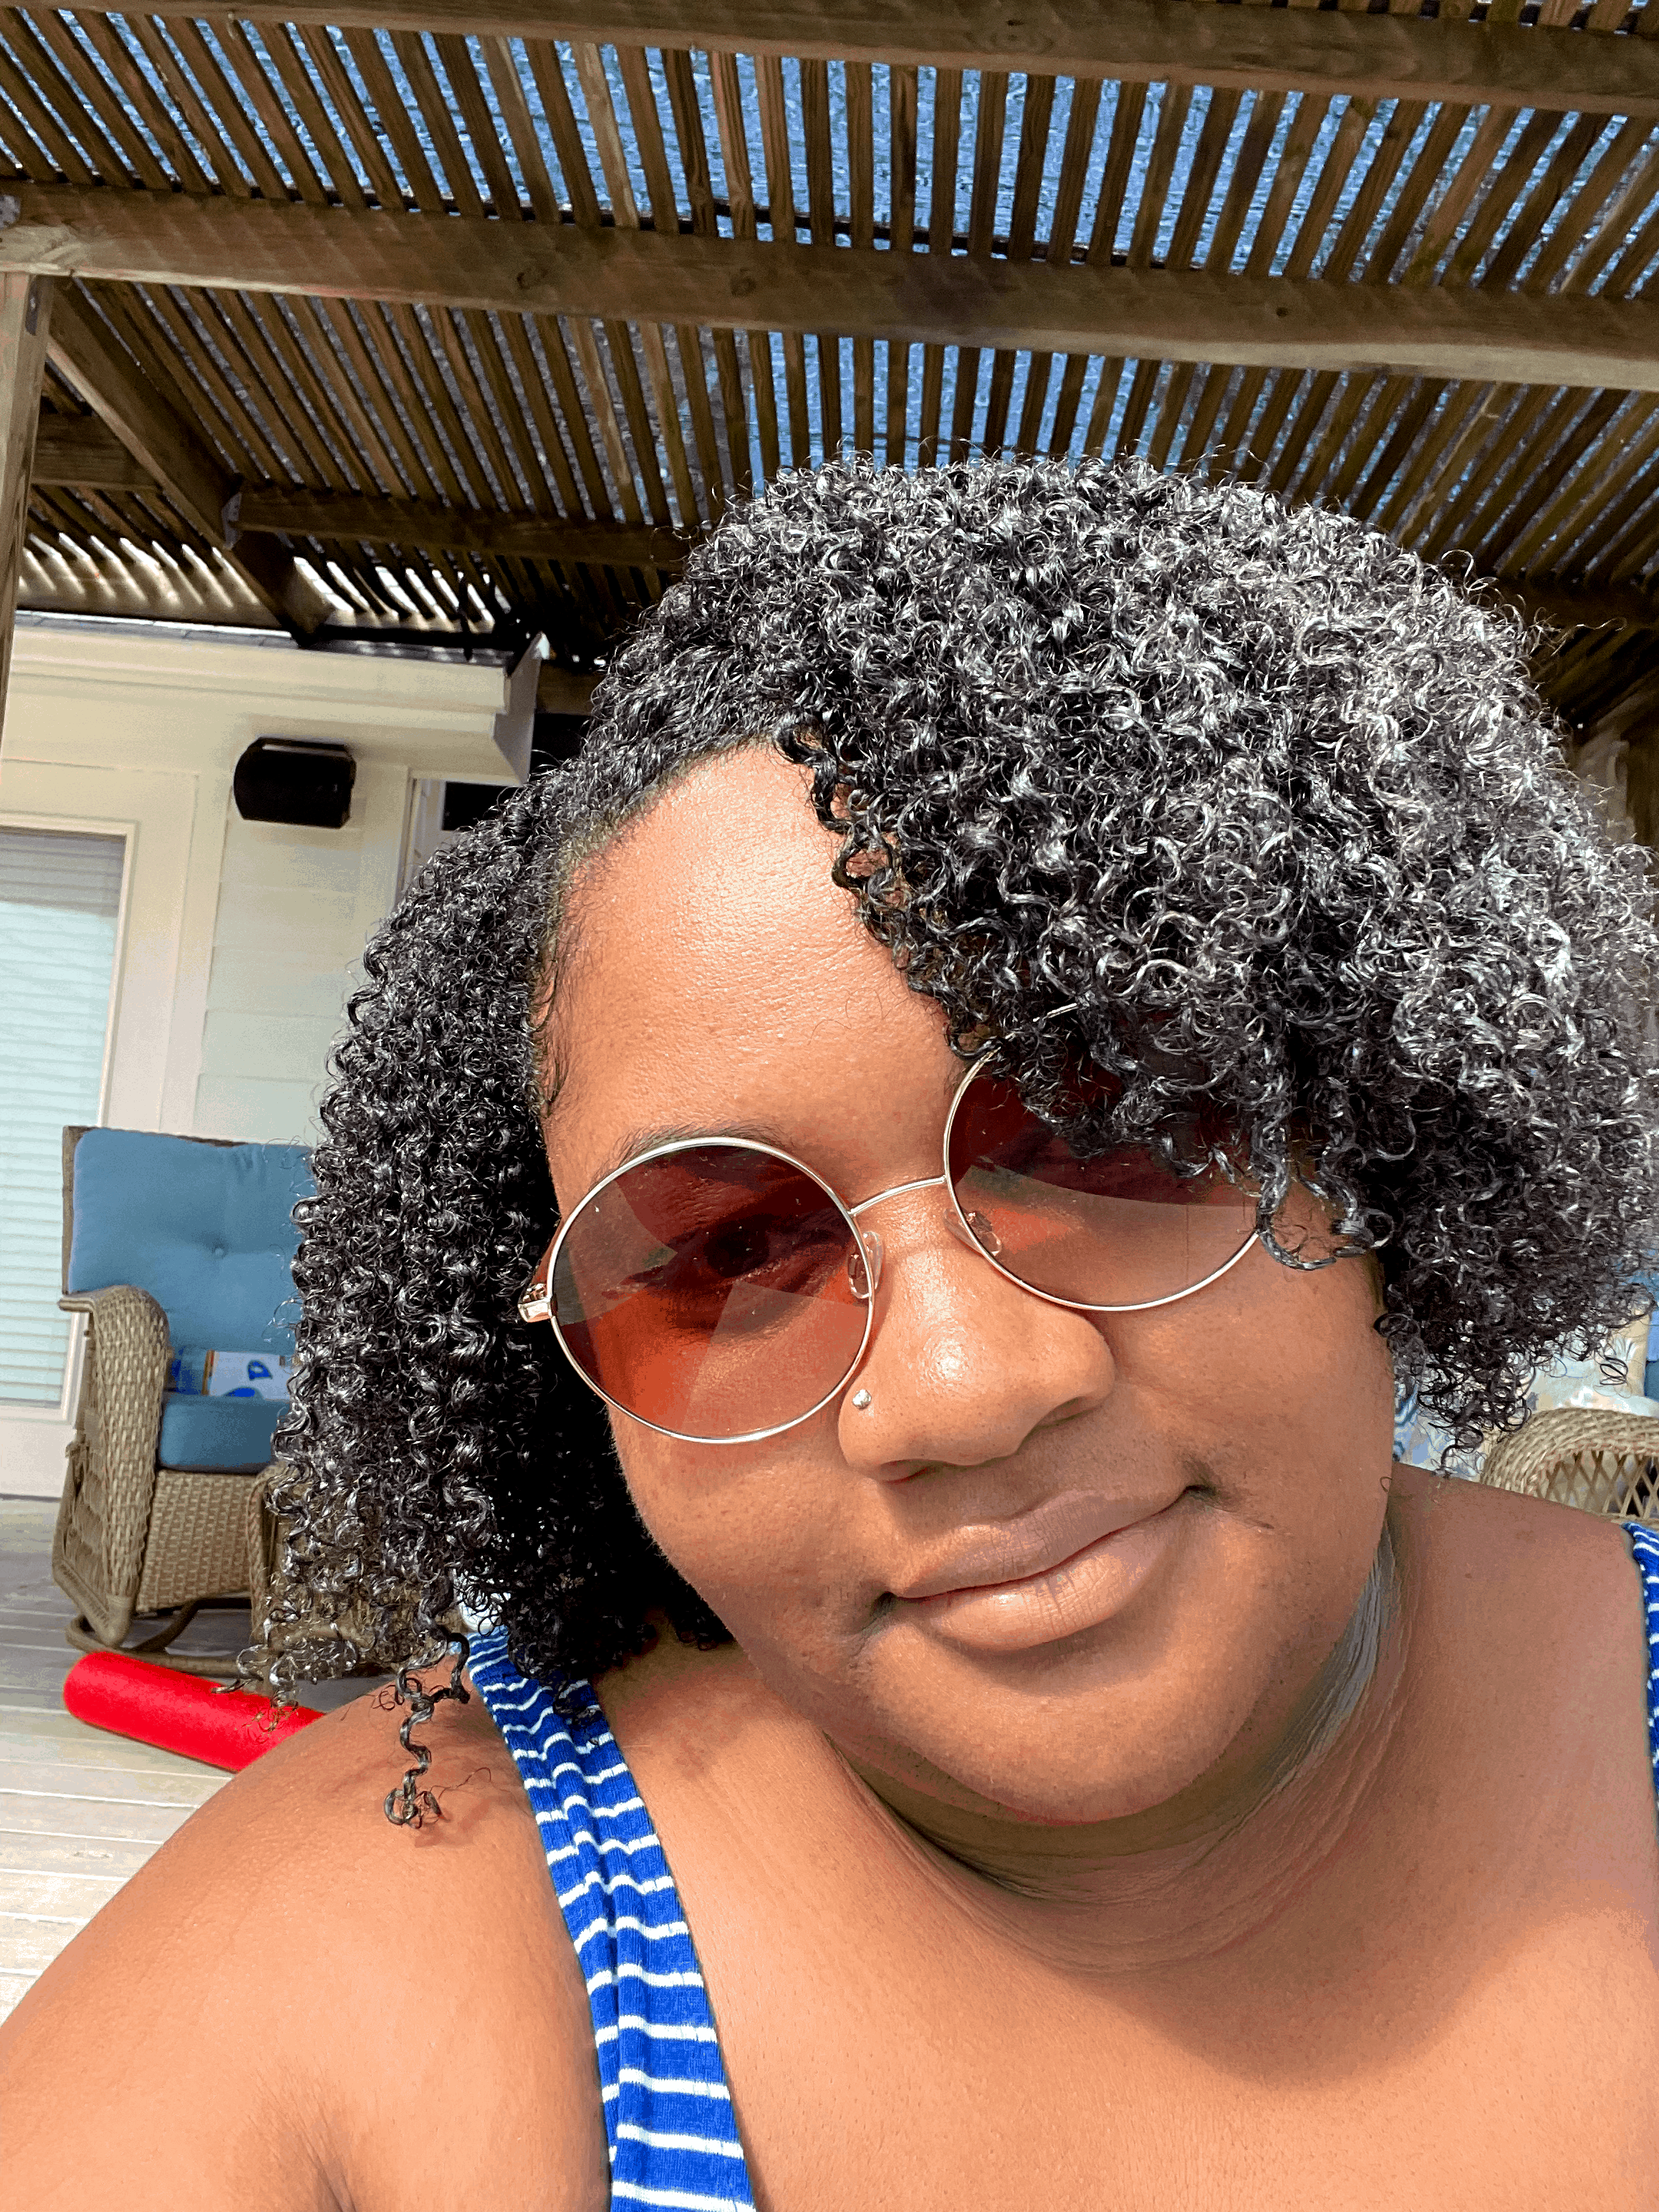 black woman with natural curly 2c hair smiling